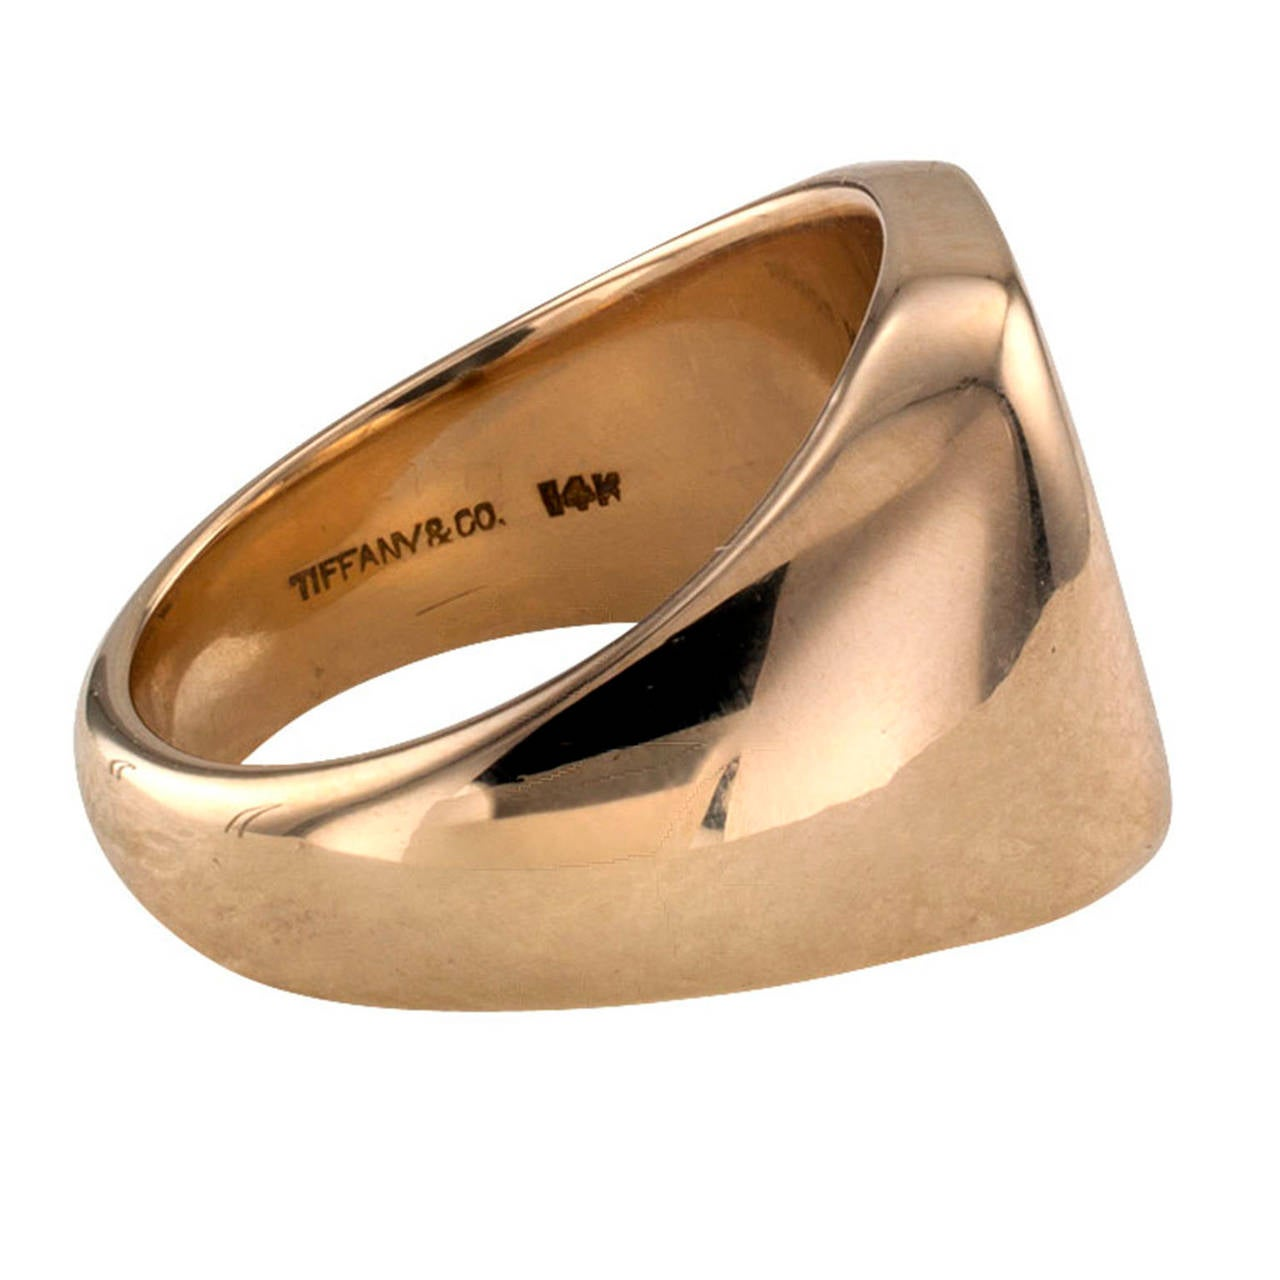 Tiffany & Co. Crest Gold Signet Ring 2